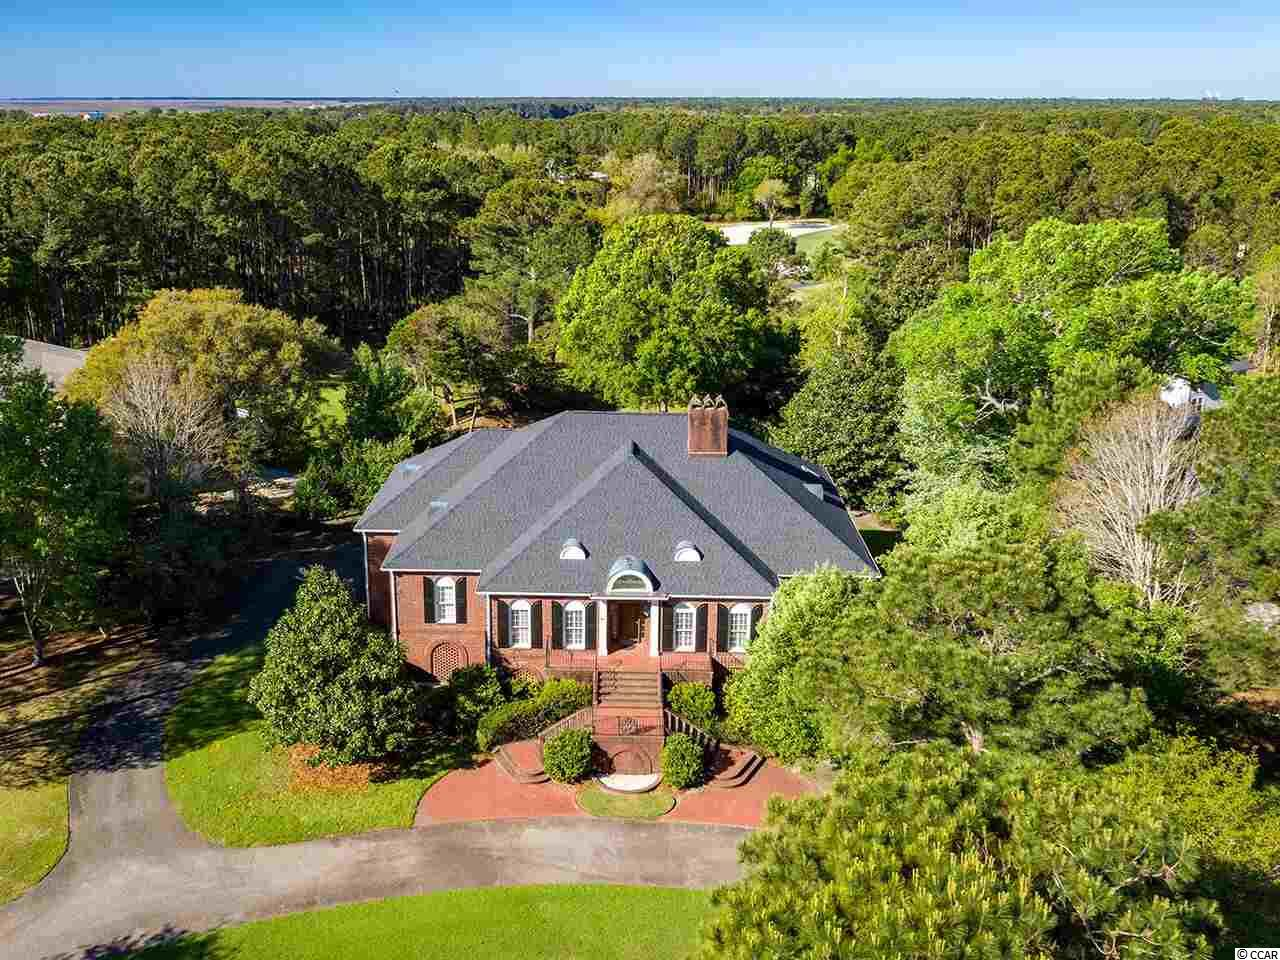 Stately and elegant, close to the beach, on over an ACRE, 2610 Wallace Pate is the perfect DeBordieu Colony home for the family who likes to entertain! This beautiful, low-maintenance, all brick, estate on the golf course is the perfect primary residence or vacation home! Your elevator will take you, your luggage and your groceries from the garage right up to the main hall, convenient to the kitchen and master suite! The entrance from the circular driveway is truly grand, with a split staircase trimmed with wrought iron railings leading to the welcoming front door. The wide, foyer features a lighted barrel ceiling, beautiful wainscoting, and dental molding, with formal living and dining rooms on either side. The center island kitchen with an abundance of cabinets and a wet bar is partially open to the huge den with gorgeous cypress paneling, coffered ceilings and fireplace. Enjoy the abundant outdoor living spaces on the 2 covered porches, deck, and large screened porch right off the kitchen. The spacious master suite features Her bathroom with a whirlpool tub, His bathroom with a walk-in shower, two walk-in closets and a linen closet. Also on the main floor are two guest suites, each with their own private baths, a large laundry room with storage, and a powder room. Upstairs you'll find the 4th bedroom, full bath, extra bunk room and plenty of storage.  The floors are hardwood in the living areas, carpet in the bedrooms, and tile in the main floor baths. The garage area features plenty of room to park cars, boats, golf carts and bikes, and a convenient, enclosed outdoor shower to wash off the sand from DeBordieu Beach, just a short golf cart ride away. DeBordieu Colony is an oceanfront community located about an hour north of Charleston, South Carolina, just south of Pawleys Island, featuring access to over 6 miles of secluded beach, private Pete Dye Golf, a Tennis & Fitness Center, an Ocean Front Beach Club with casual and fine dining, saltwater creek access to No